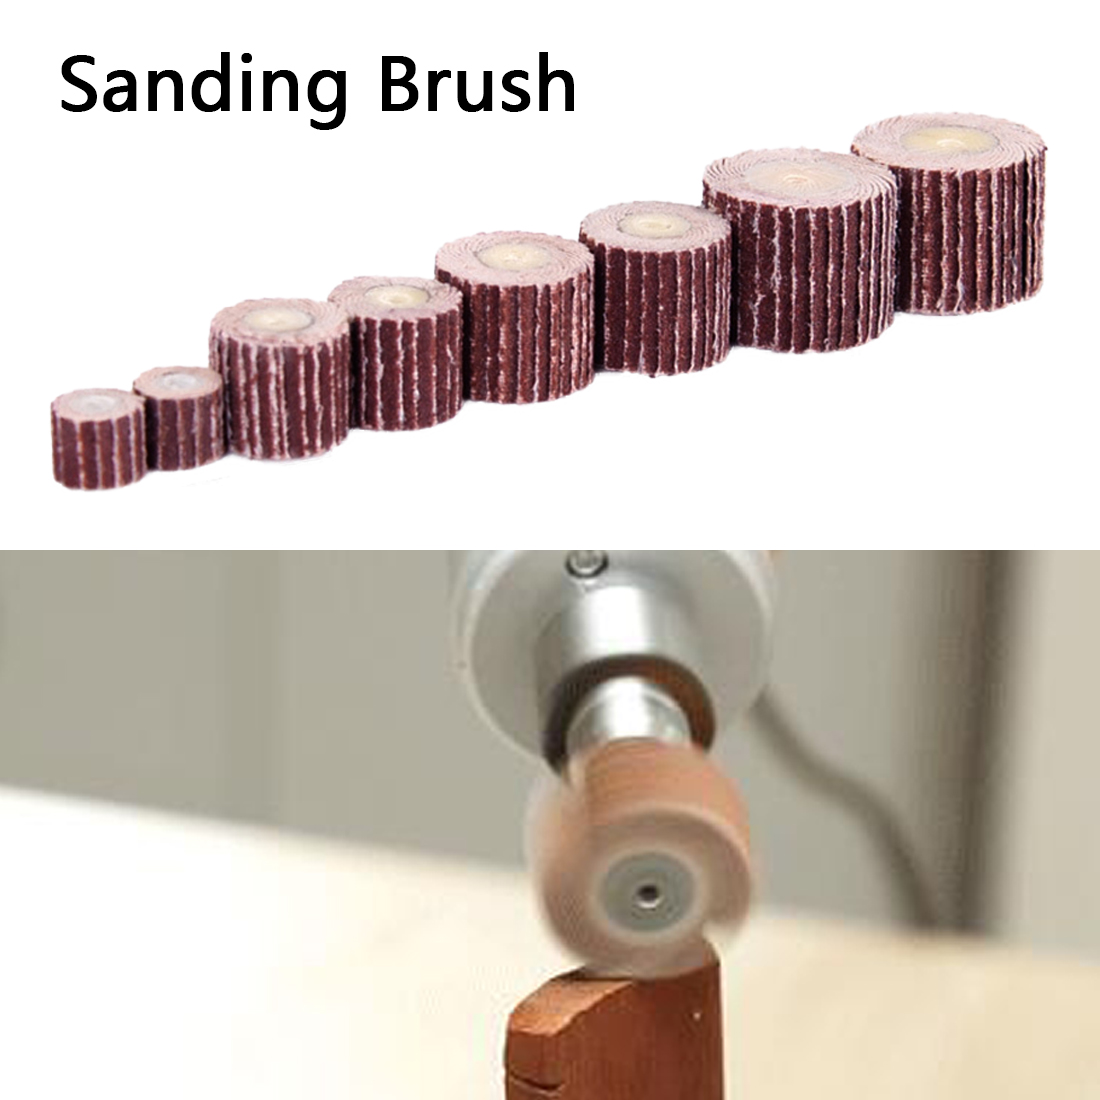 Grinding Sanding Flap Wheels Brush 10-12mm Sanding Flap Disc Sand For Abrasive Grinder Rotary Tools Dremel Tools